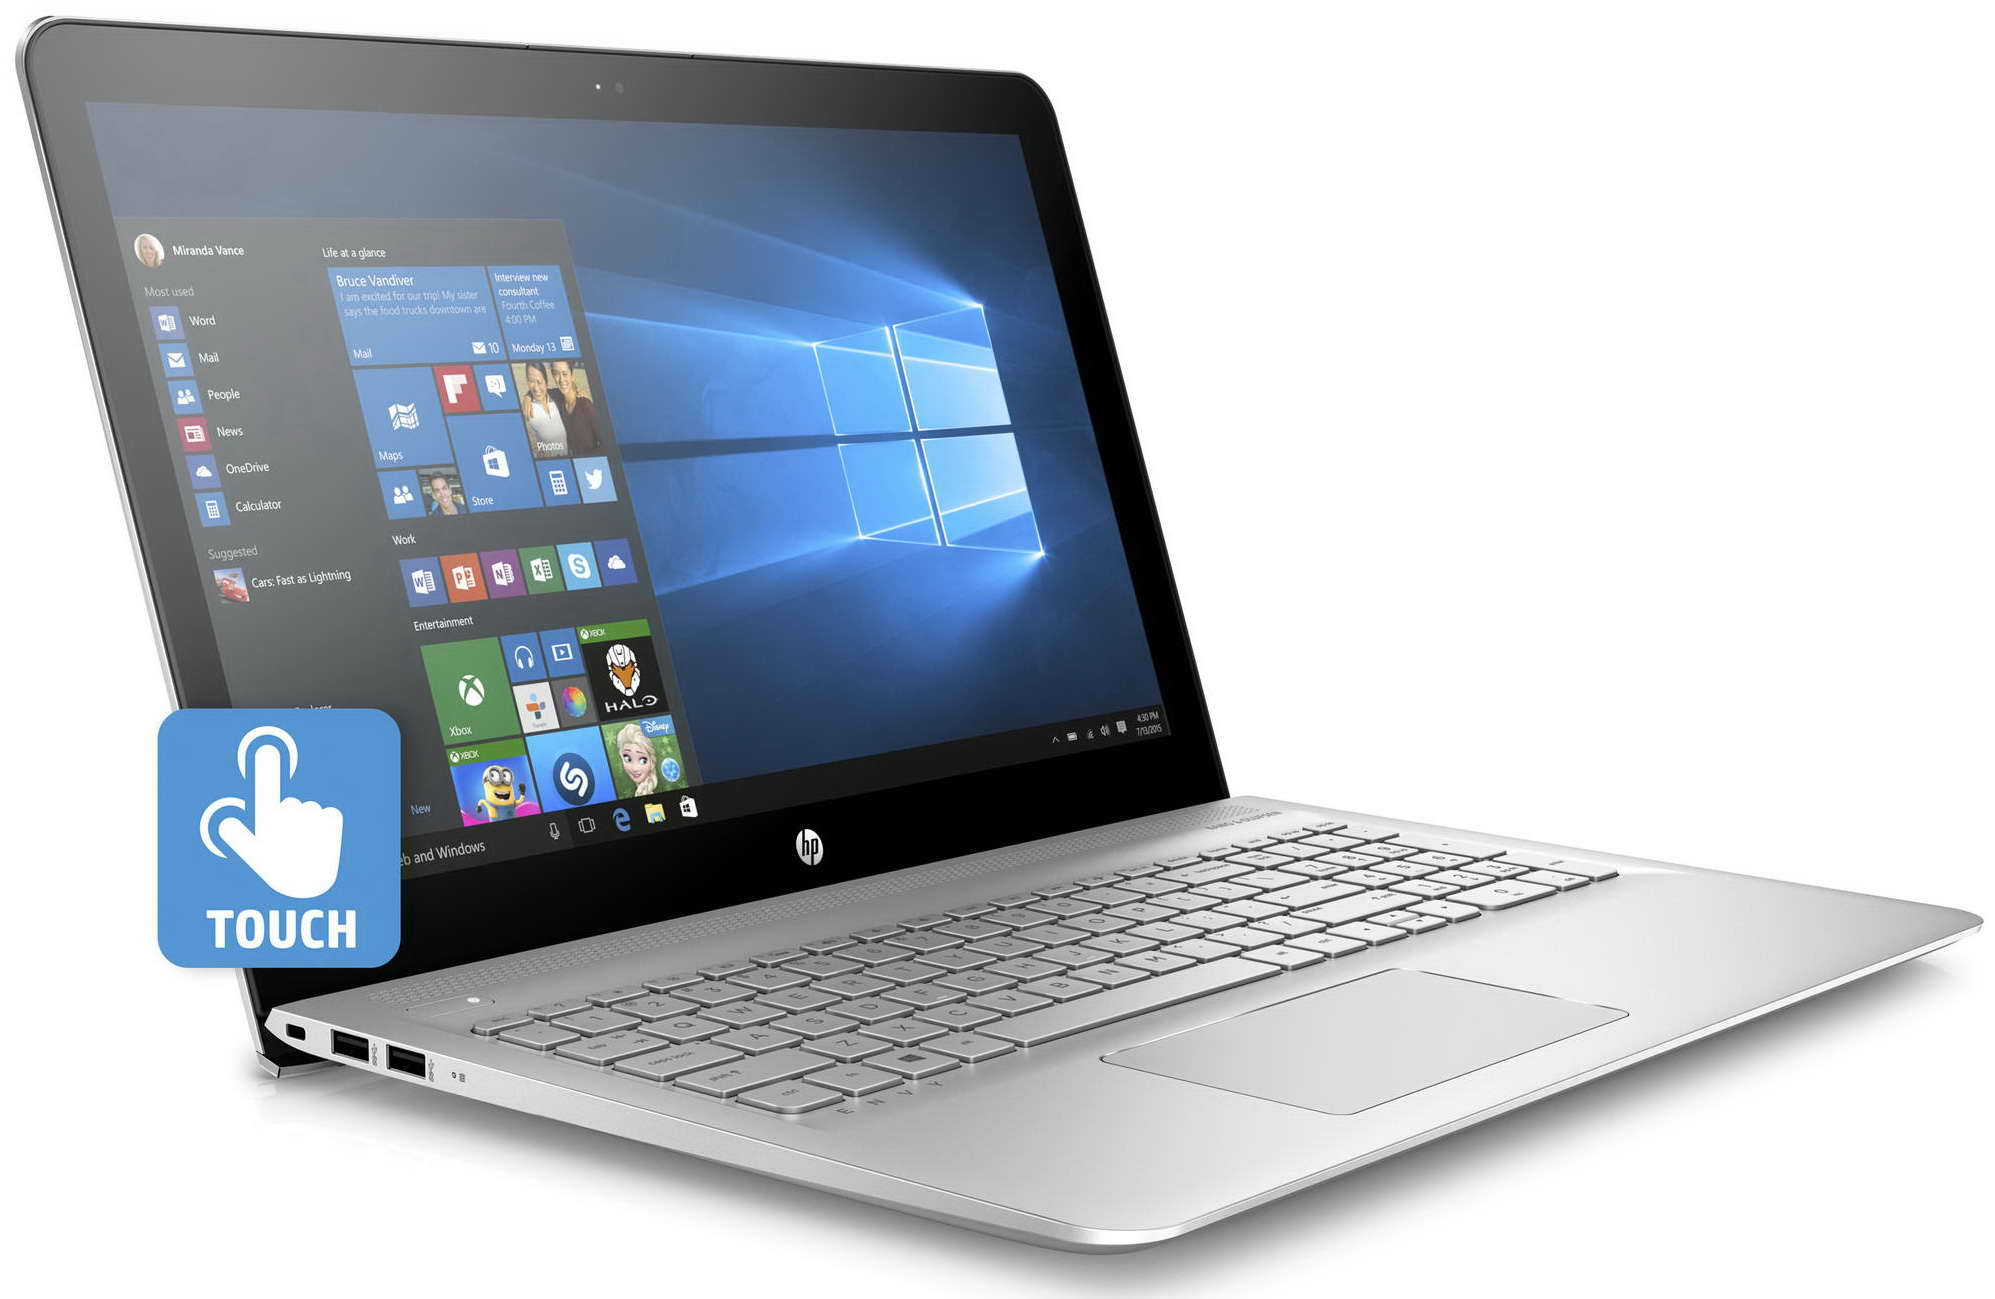 Download Drivers For Hp Envy As Wm on Windows 10 Restore Usb